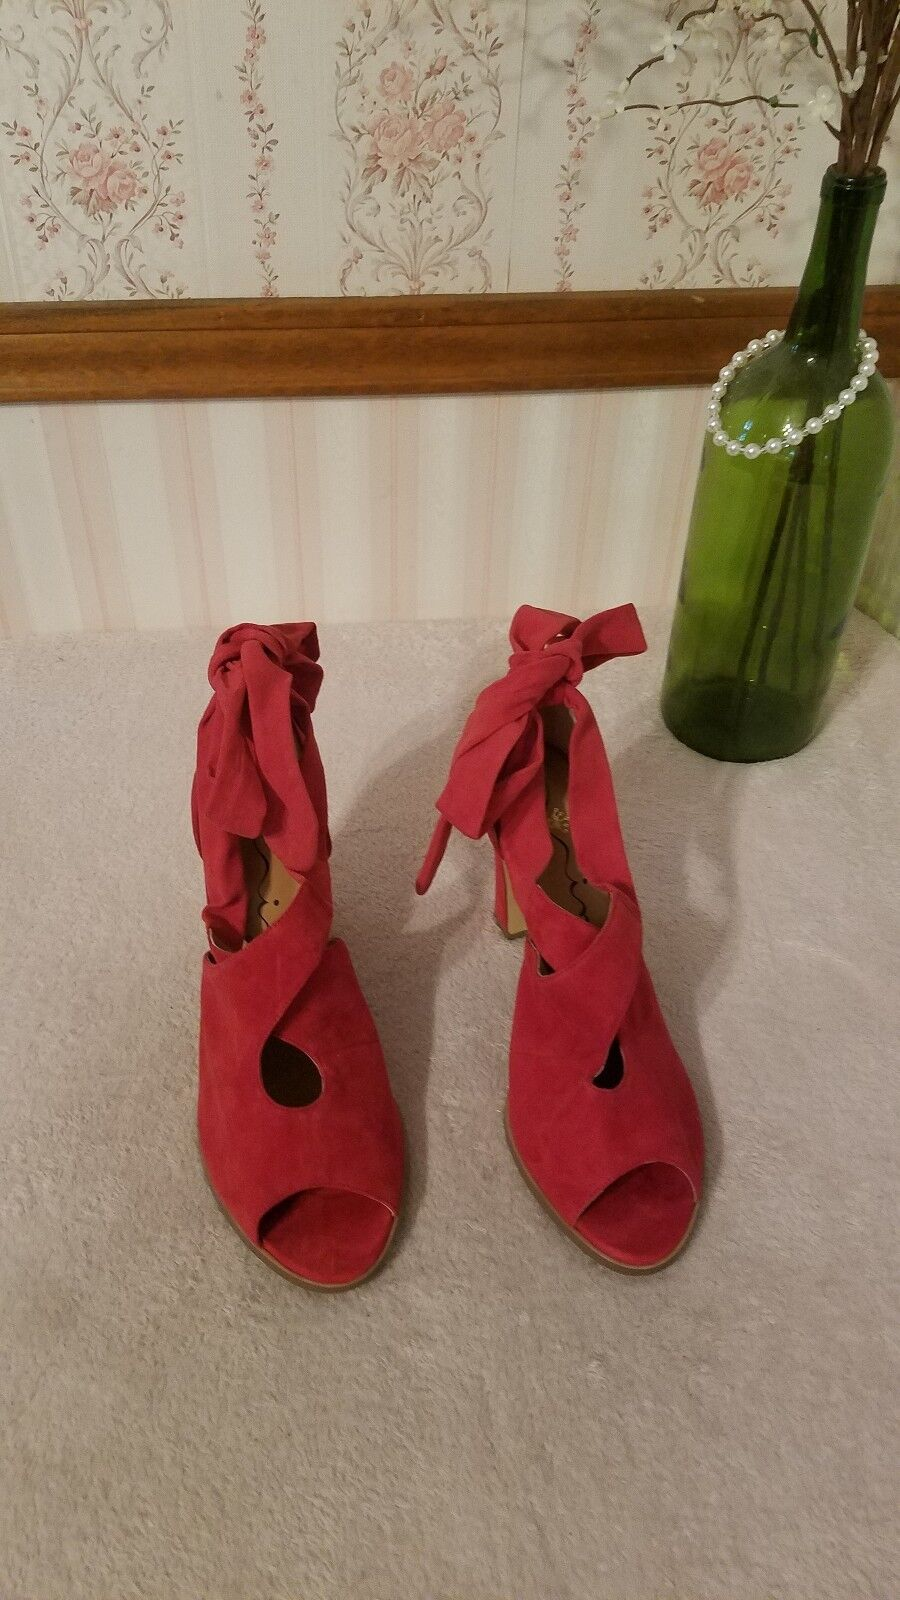 Nina Originals Serena Ankle Wrap Pump Red Suede block heel size 8.5  168